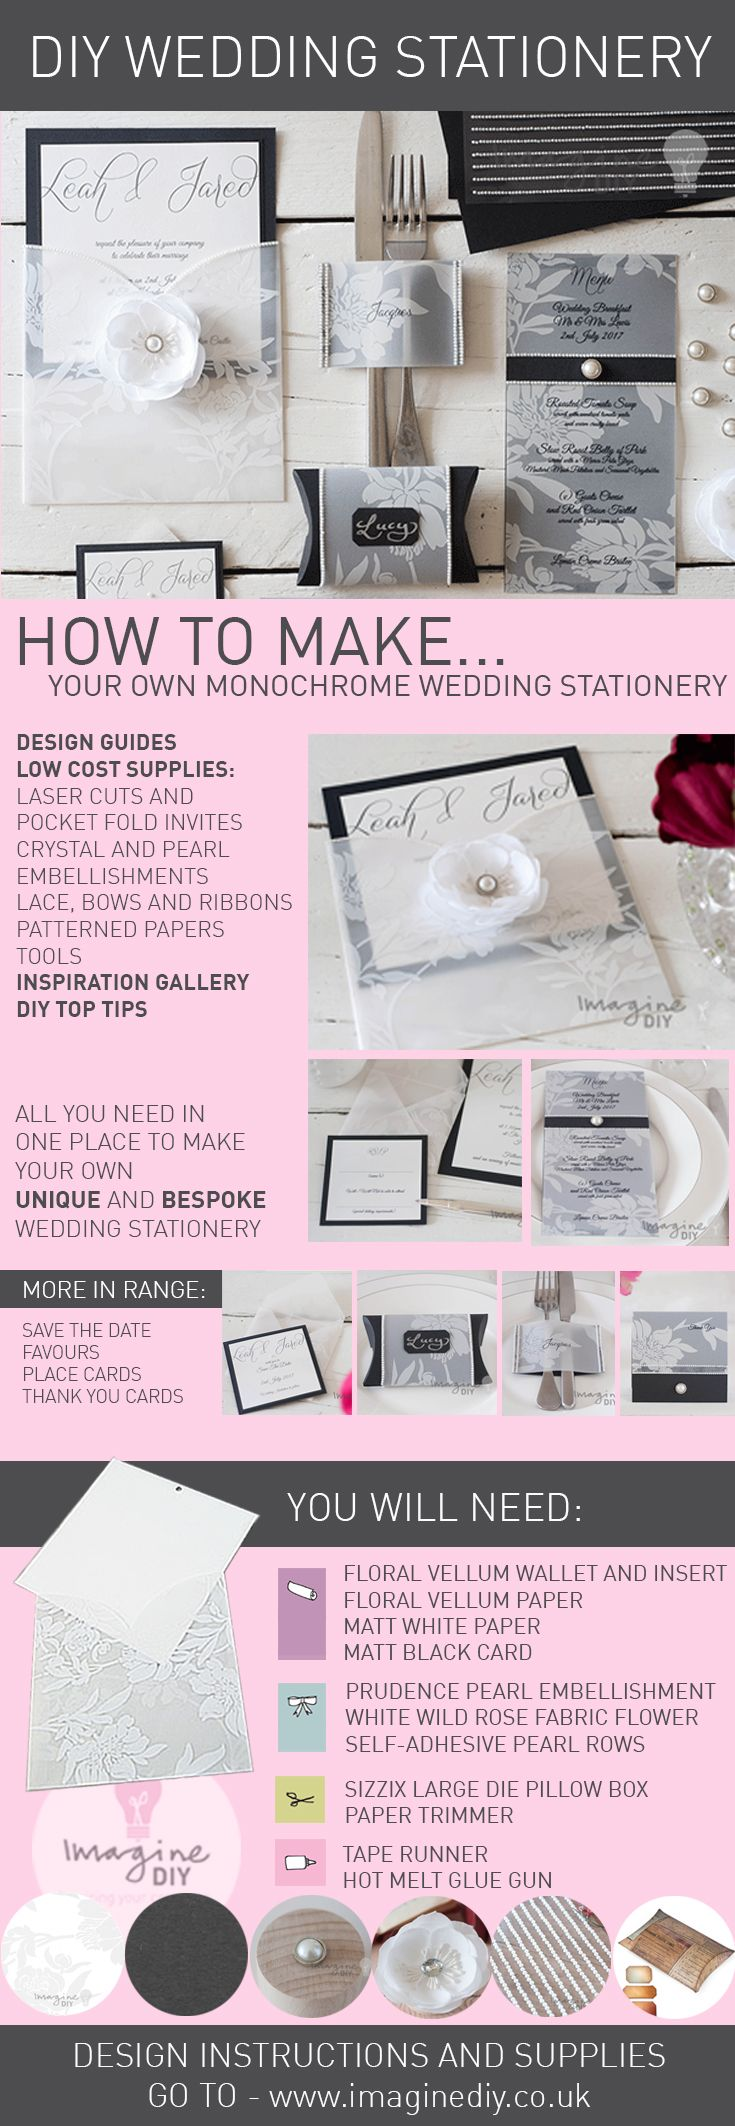 232 best wedding stationery designs images on pinterest cards monochrome black and white diy design guide junglespirit Images